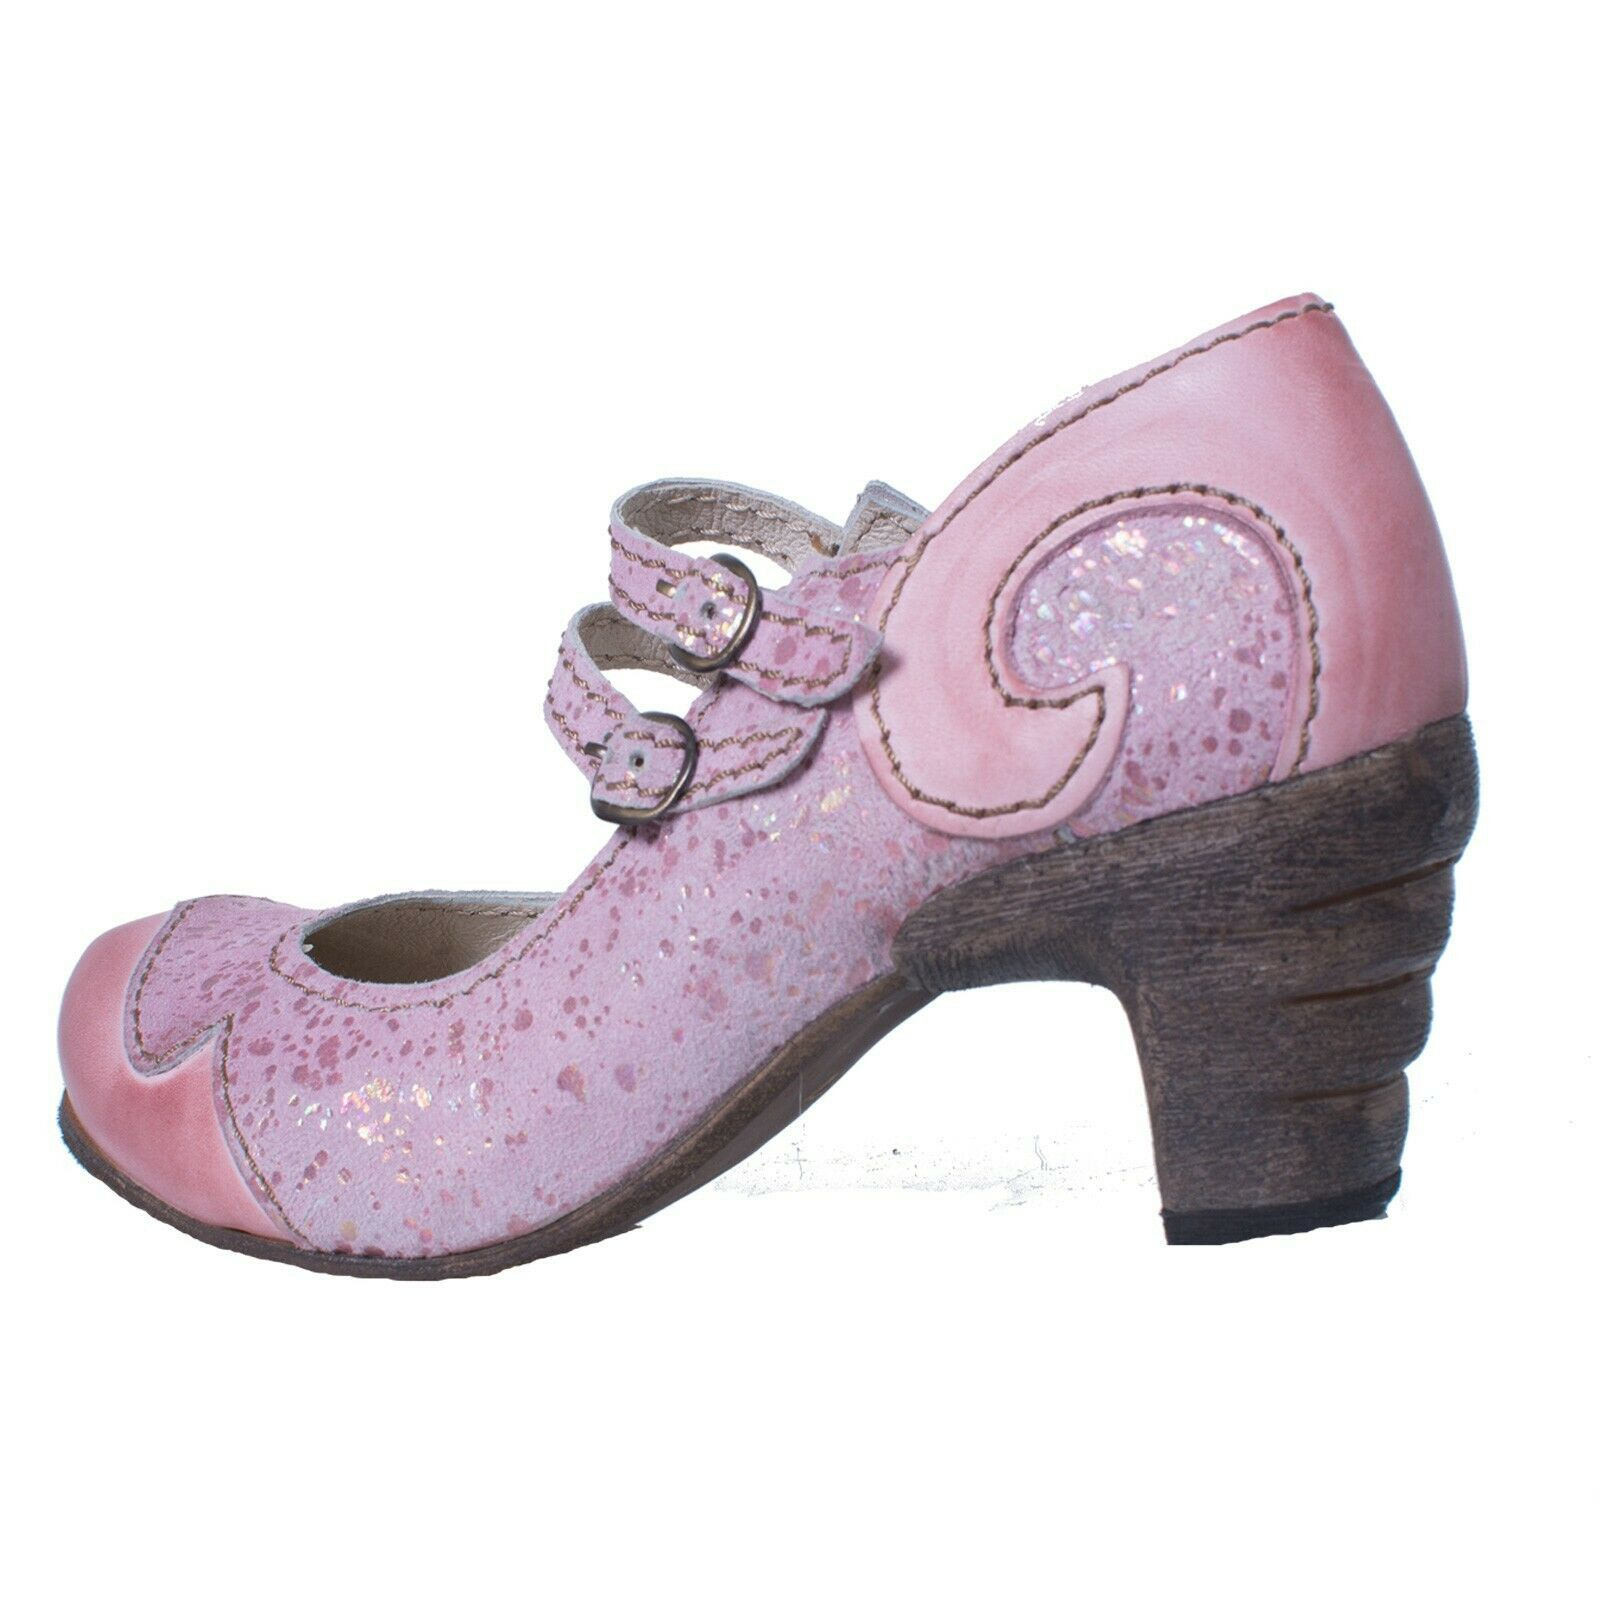 Rovers 51001 crust Costa purple Fabulous Summer Pumps in Pink